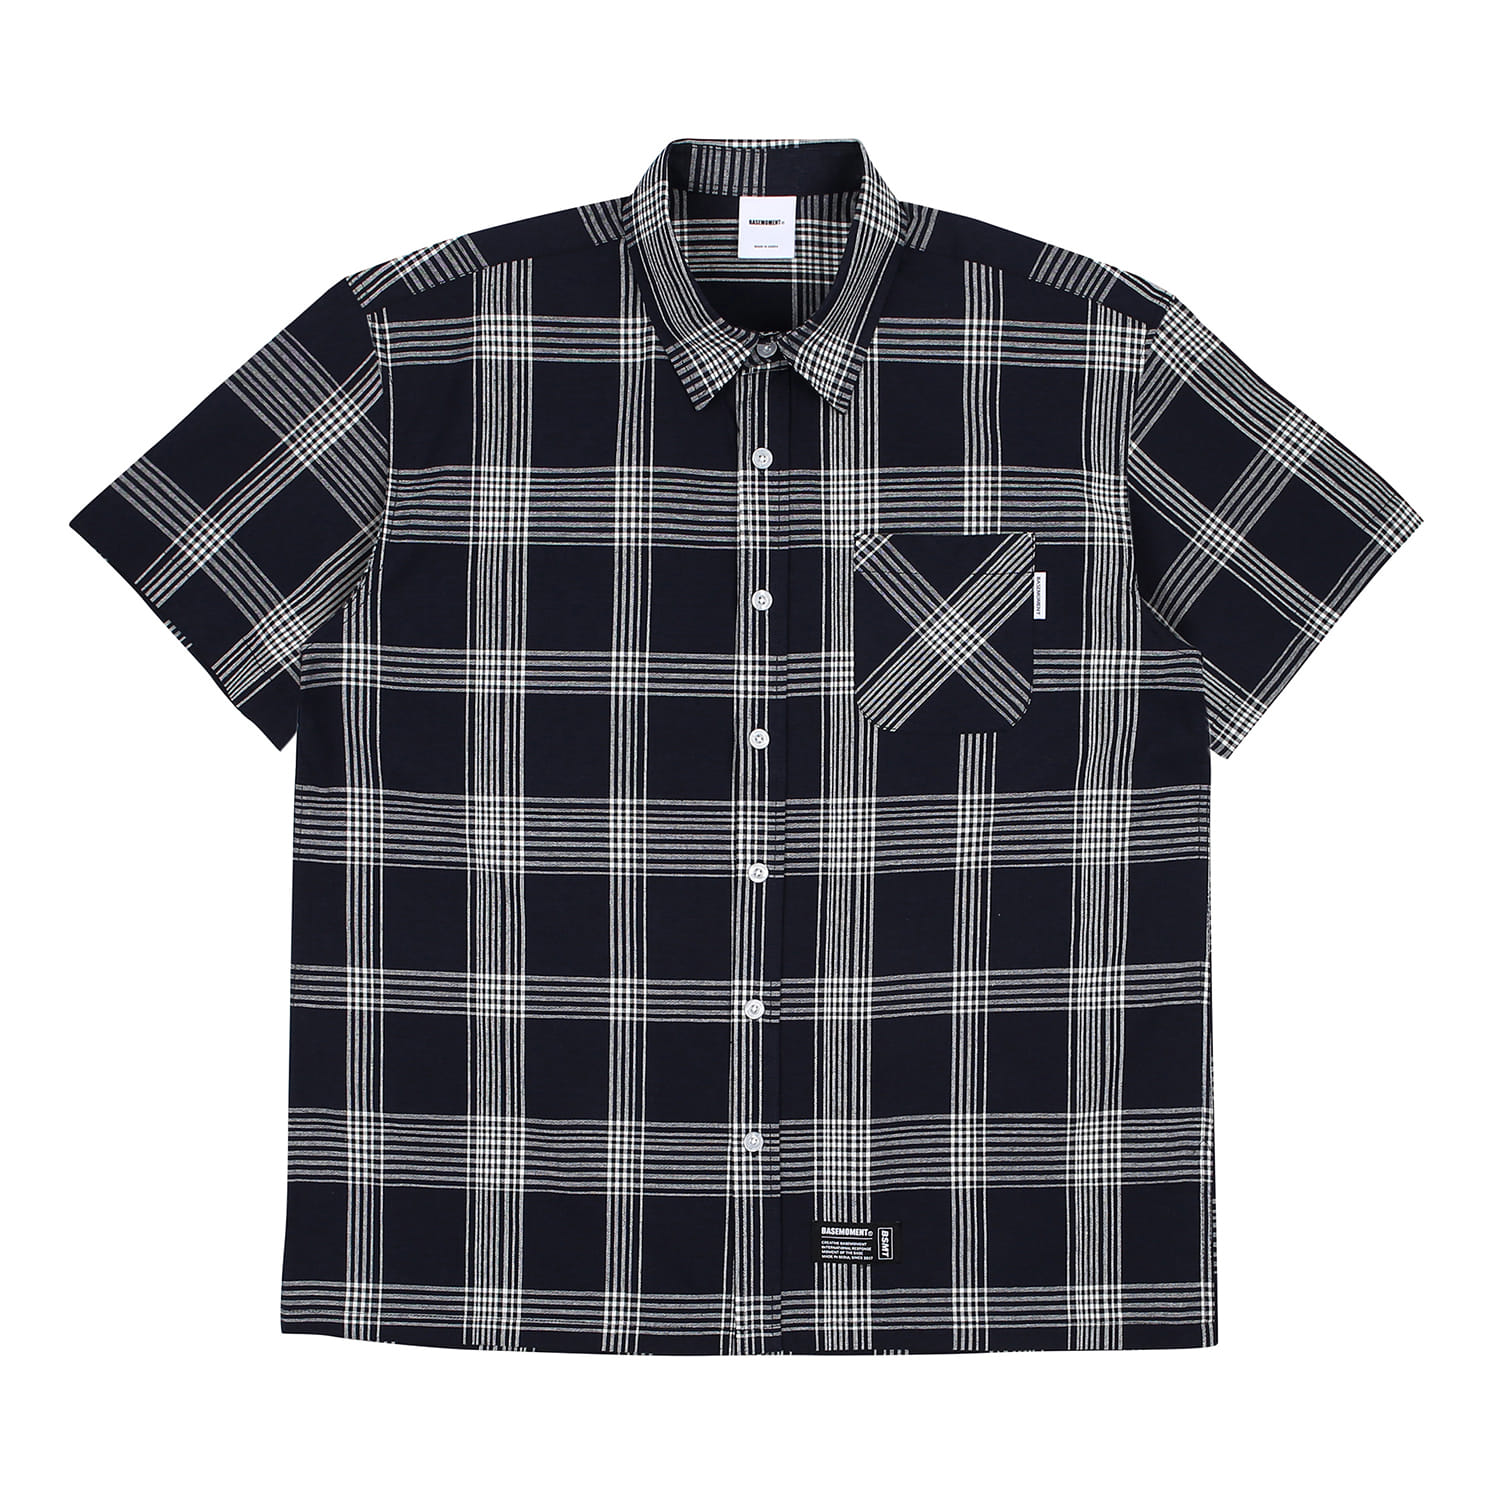 [BASEMOMENT] Plaid Check S/S Shirt - Navy